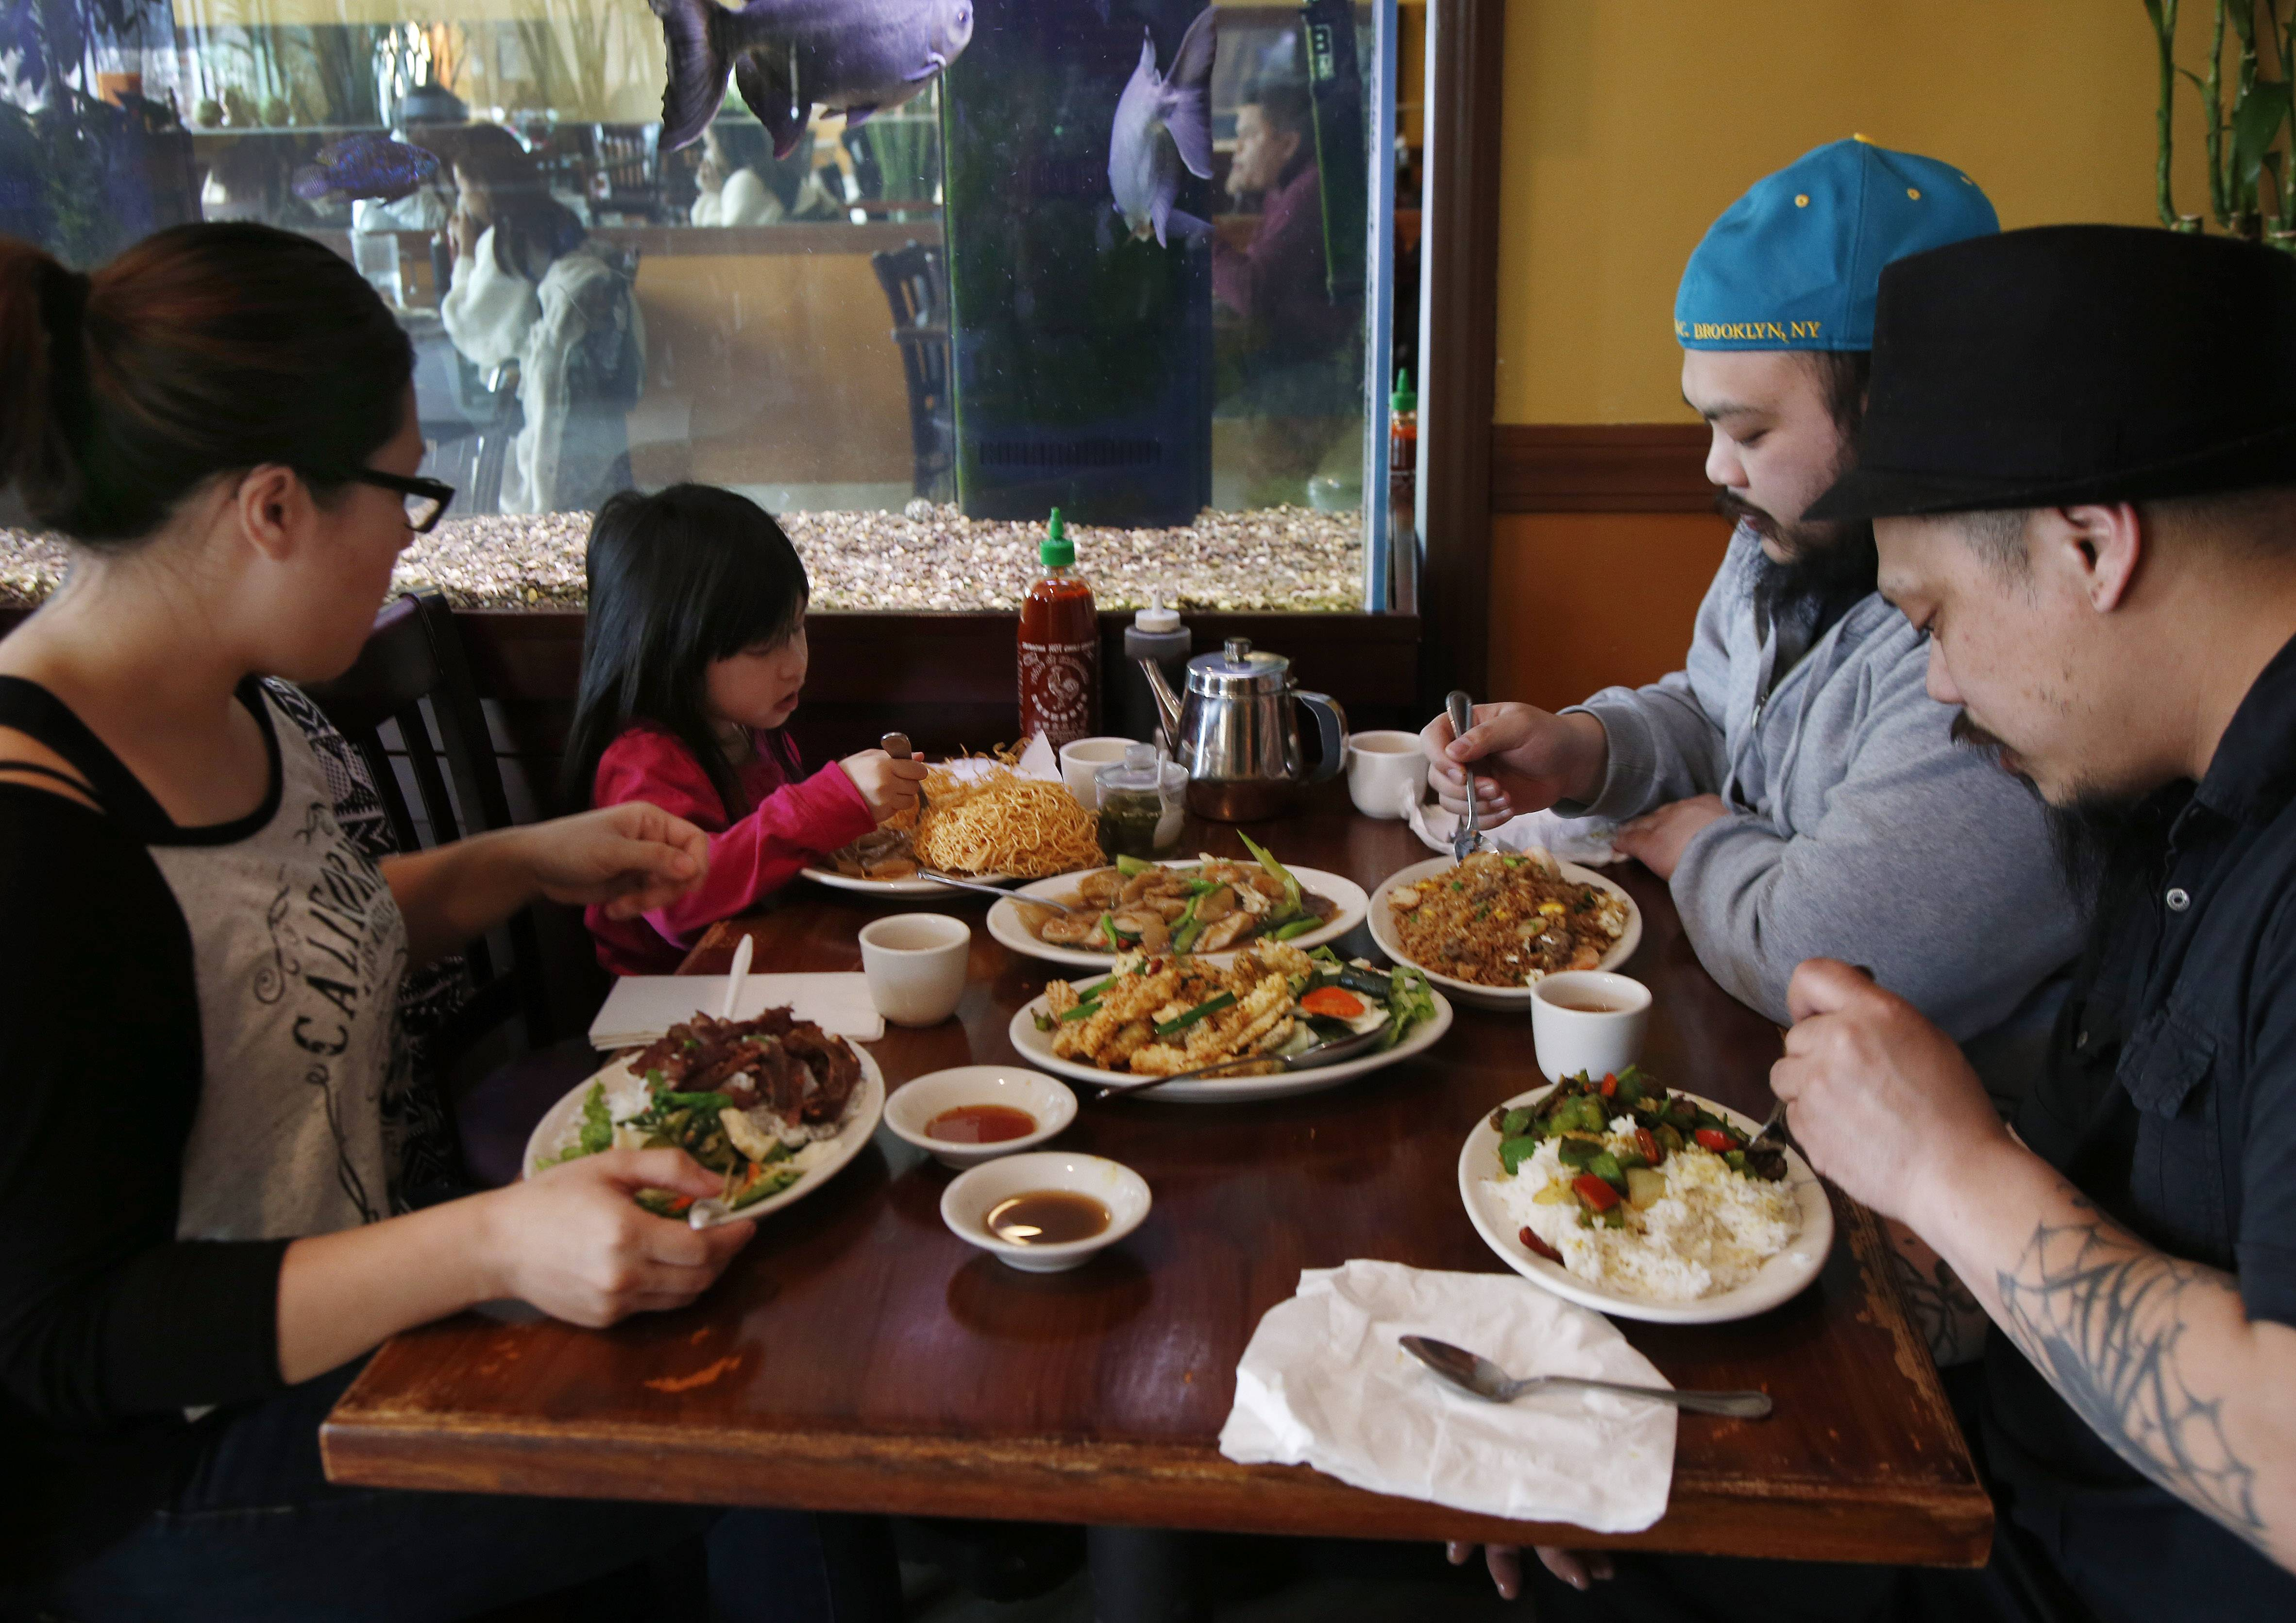 Patrons eat lunch at Simply Khmer, a Cambodian restaurant in Lowell, Mass.